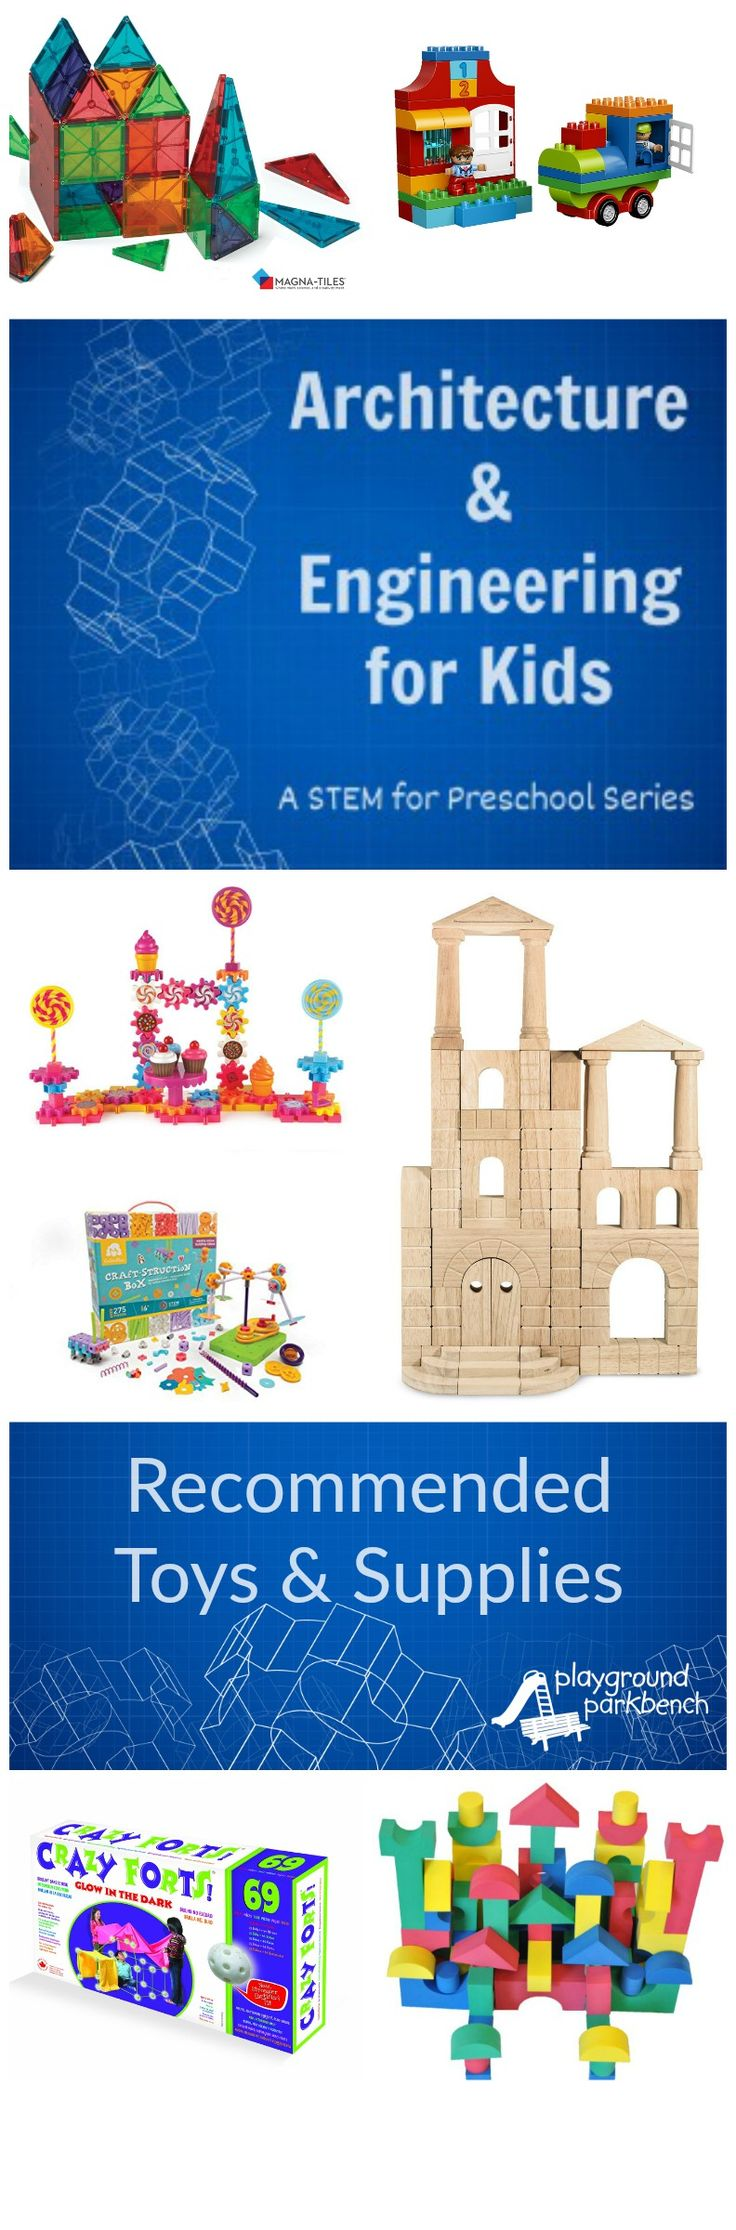 Architectural and Engineering Toys for Kids